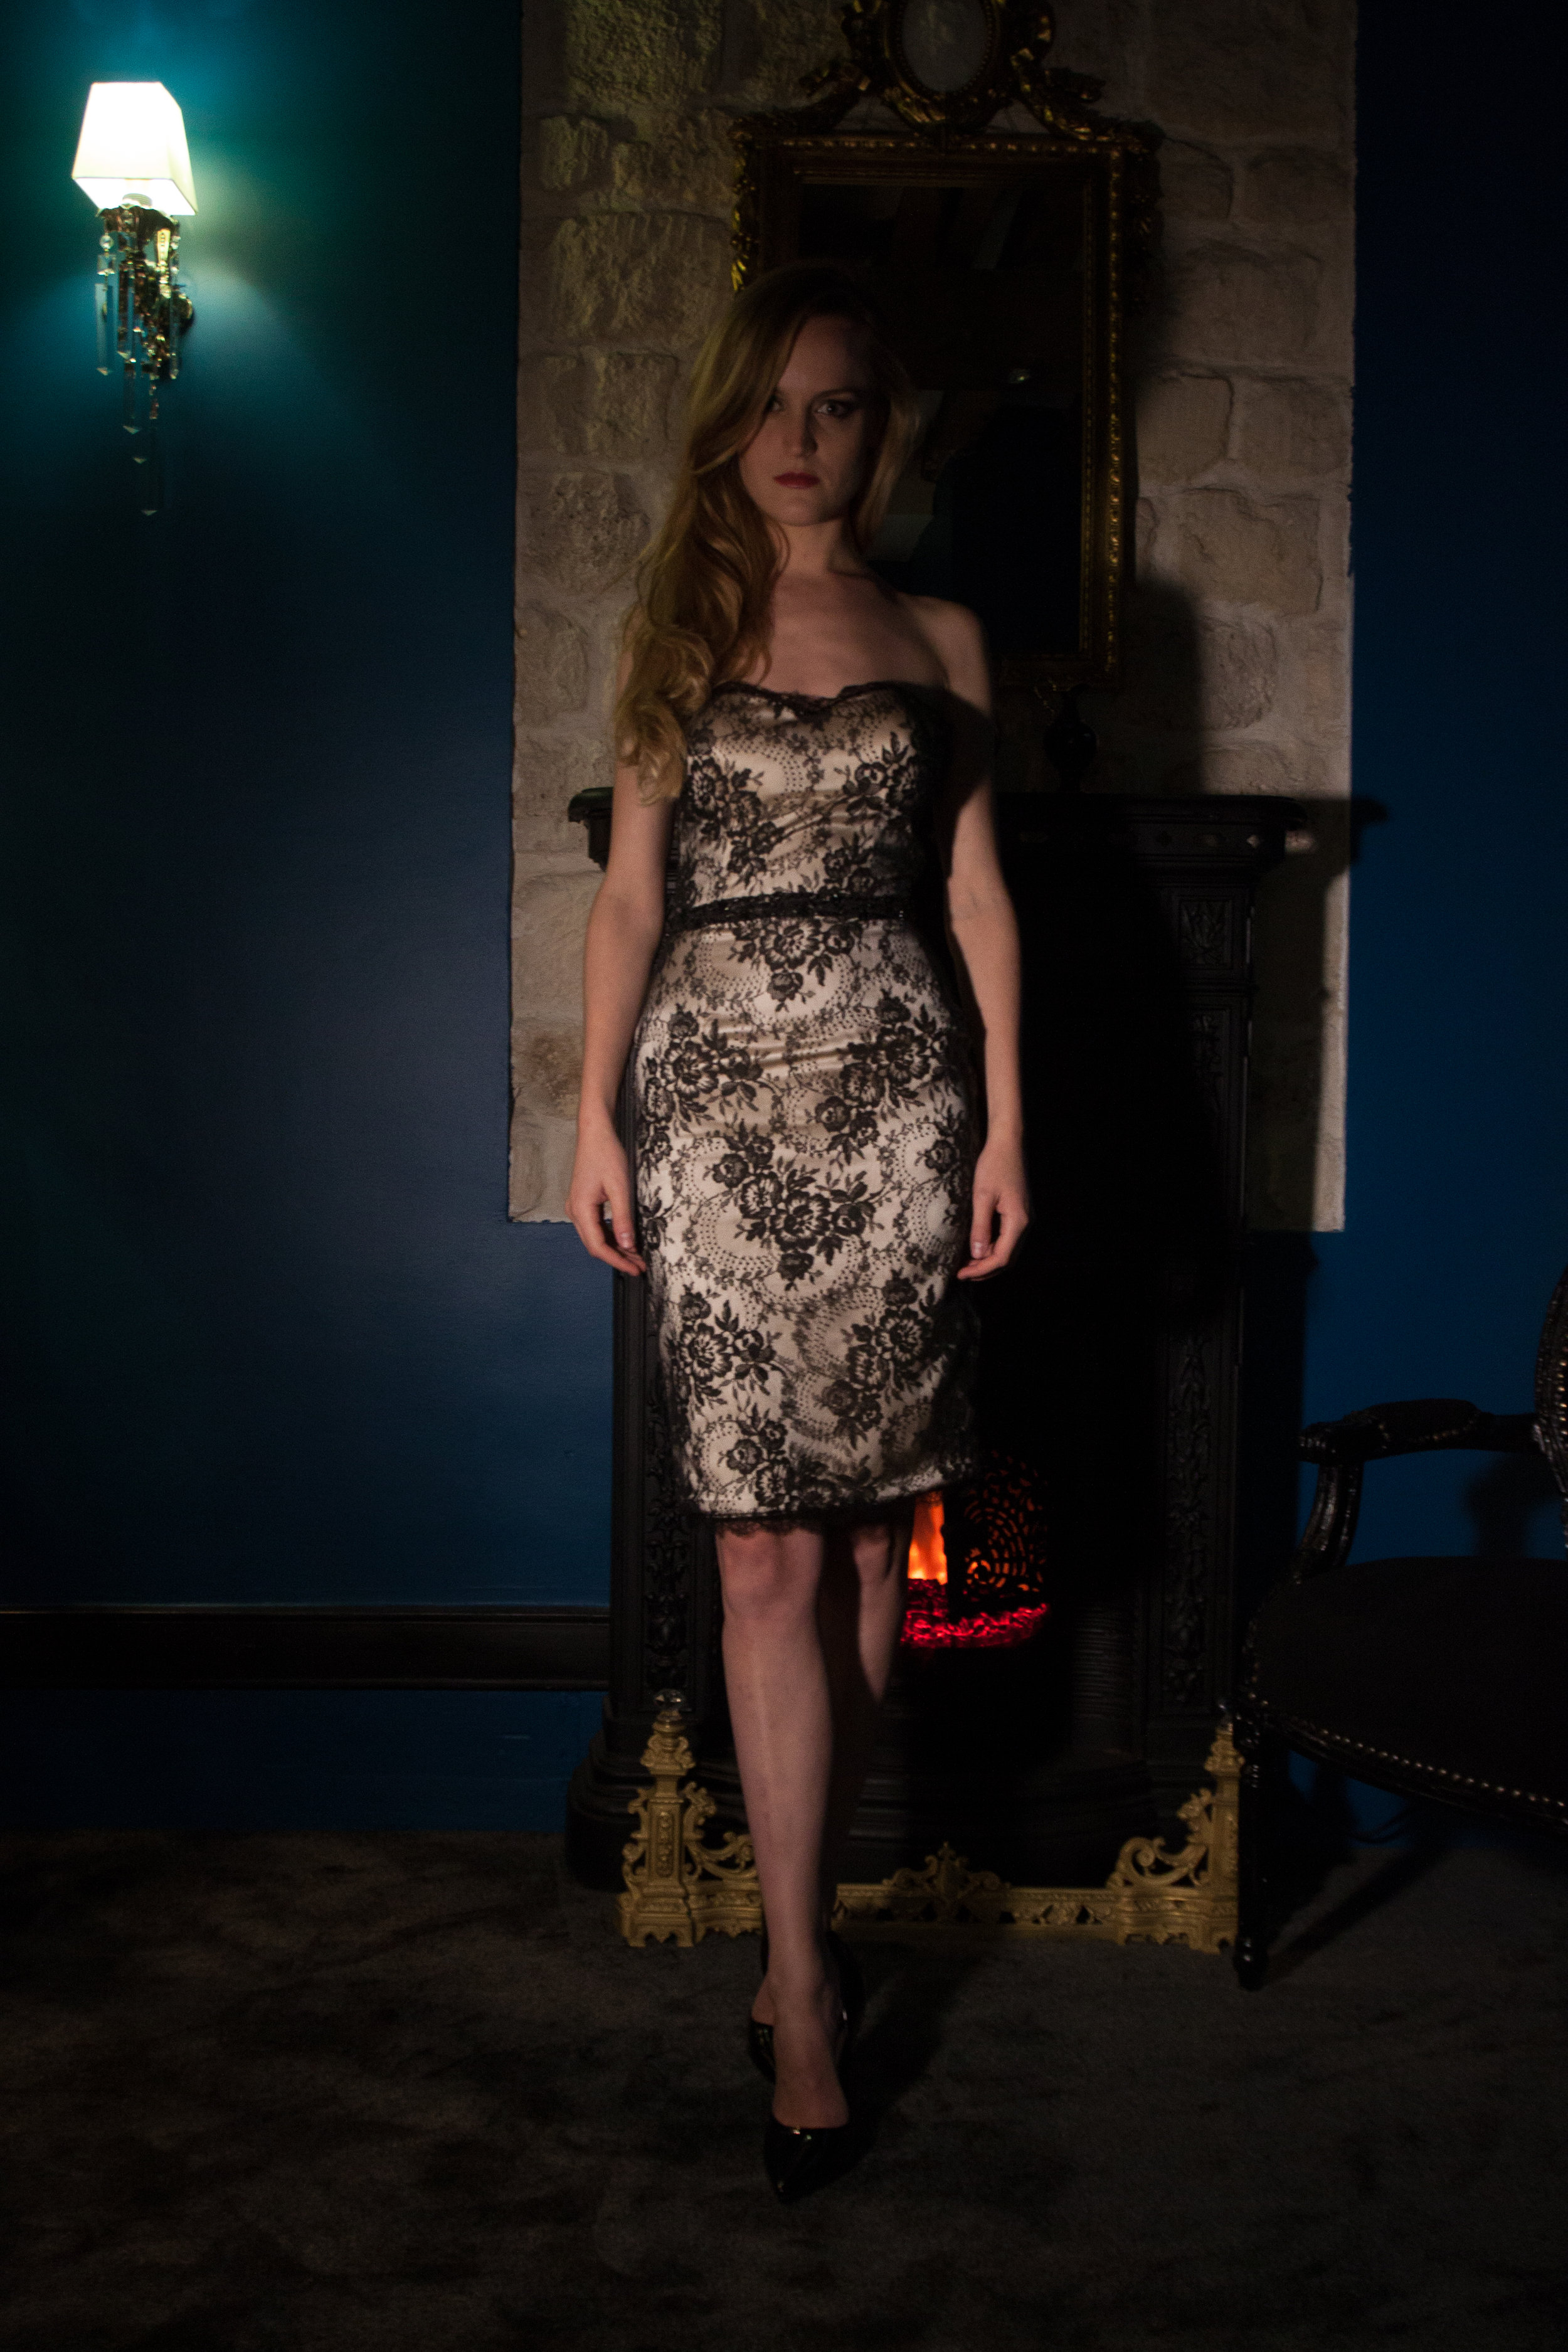 CAMILLE. Black dress with Calais lace on ivory satin. The patterns are enriched with a delicate black seed bead embroidery faceted and dotted with small flowers made of jet.